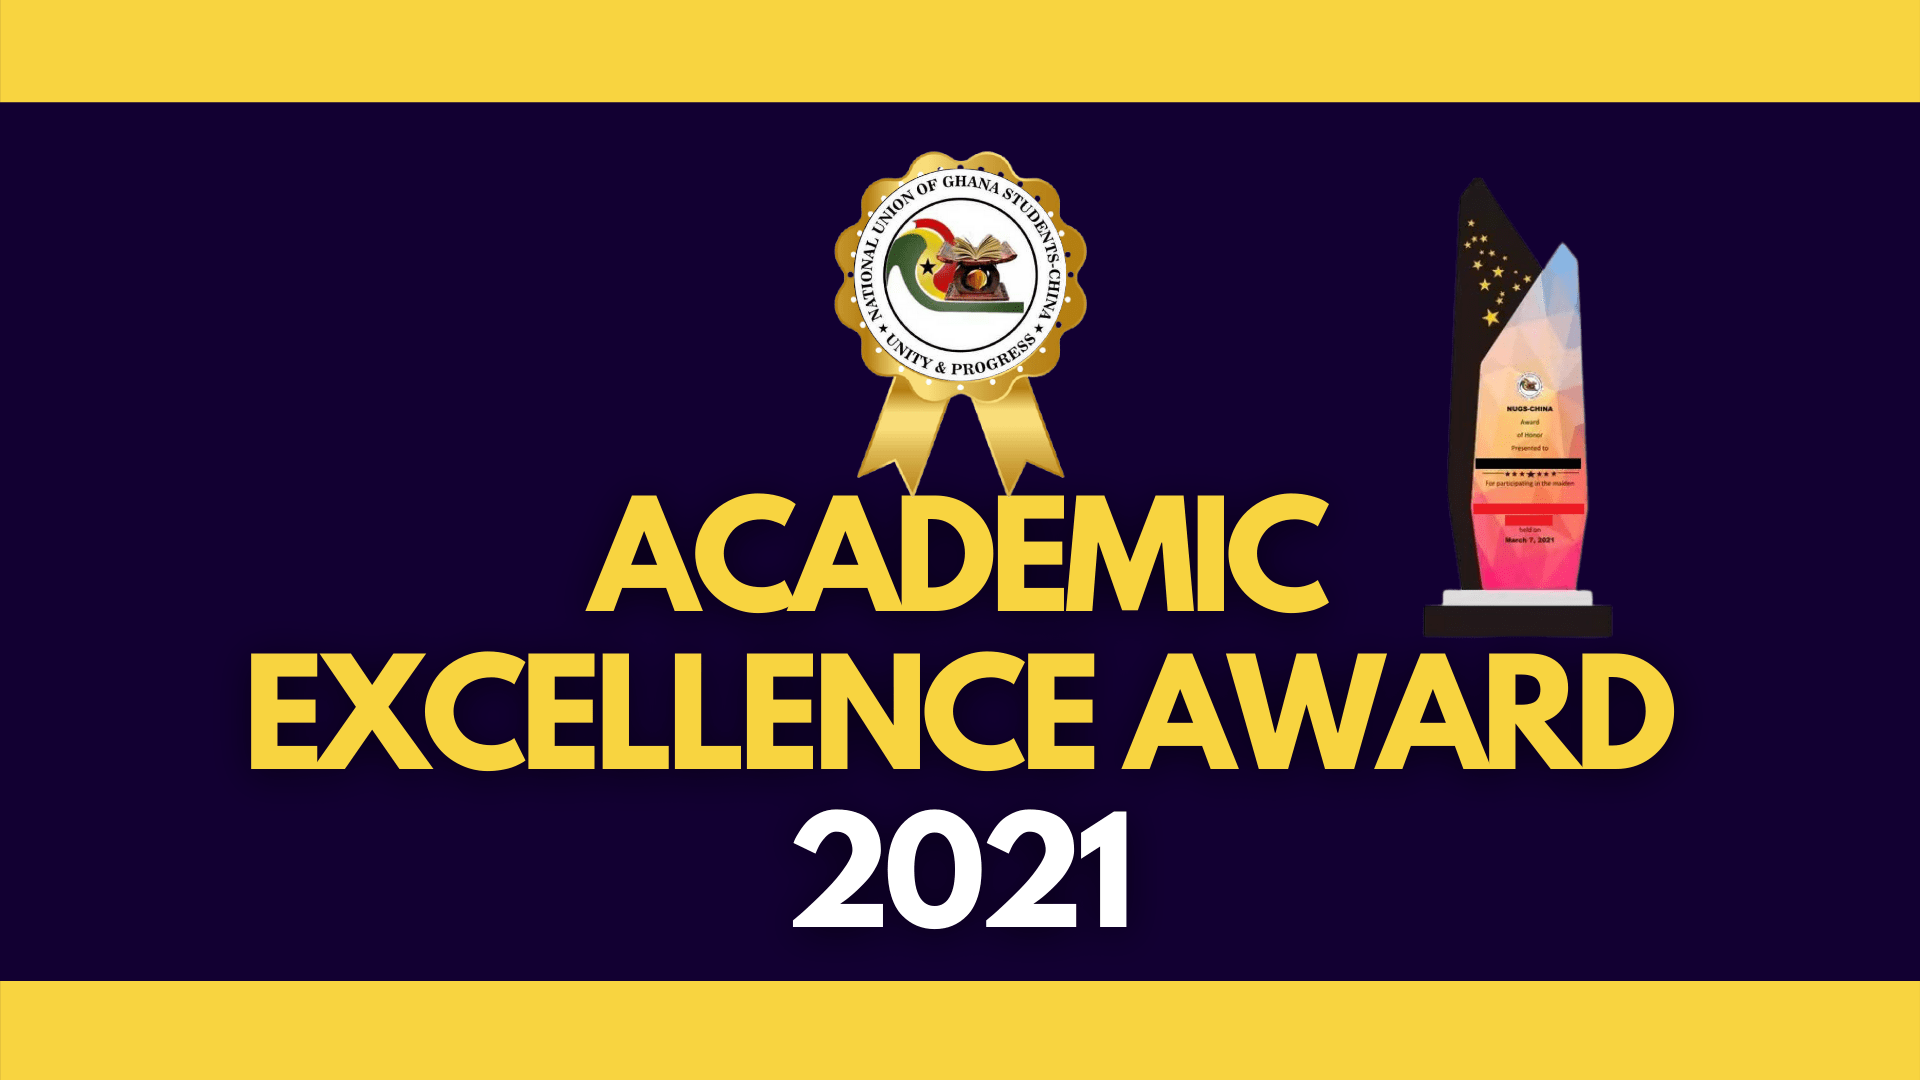 INTRODUCTION OF ACADEMIC EXCELLENCE AWARD WINNERS 2021